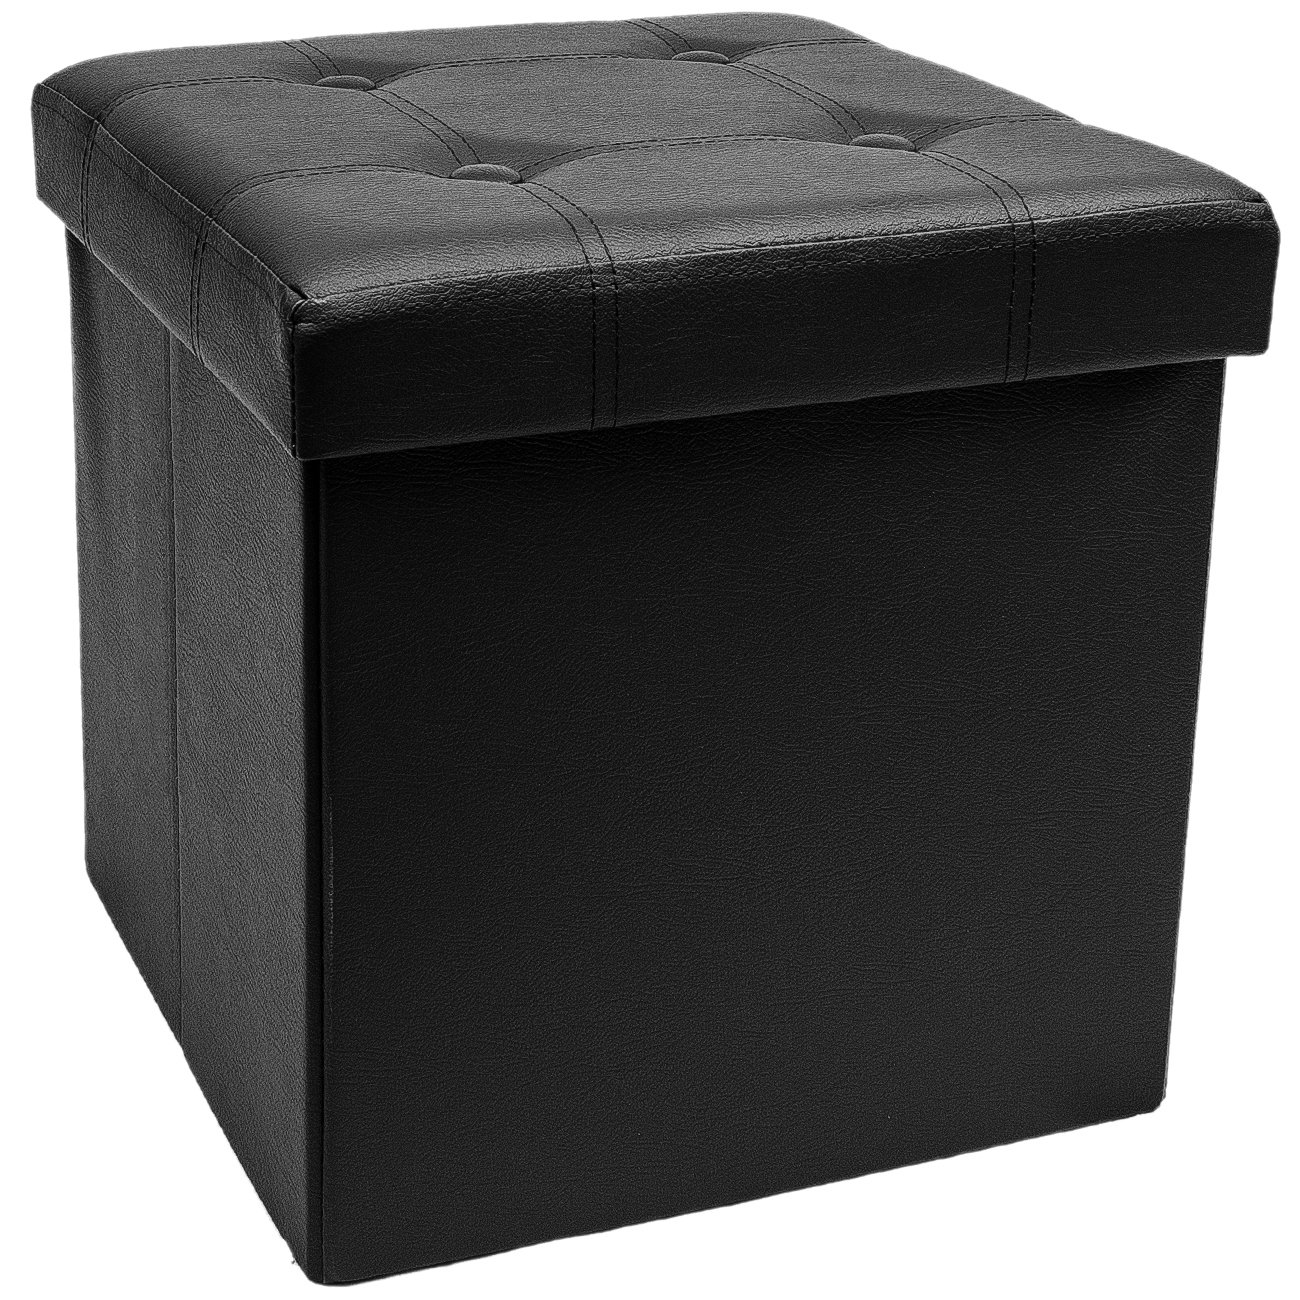 Sorbus Storage Ottoman – Collapsible/Folding Cube Ottoman with Cover–Perfect Hassock, Foot Stool, Seat, Coffee Table, Storage Chest, and more–Contemporary Faux leather (Black)